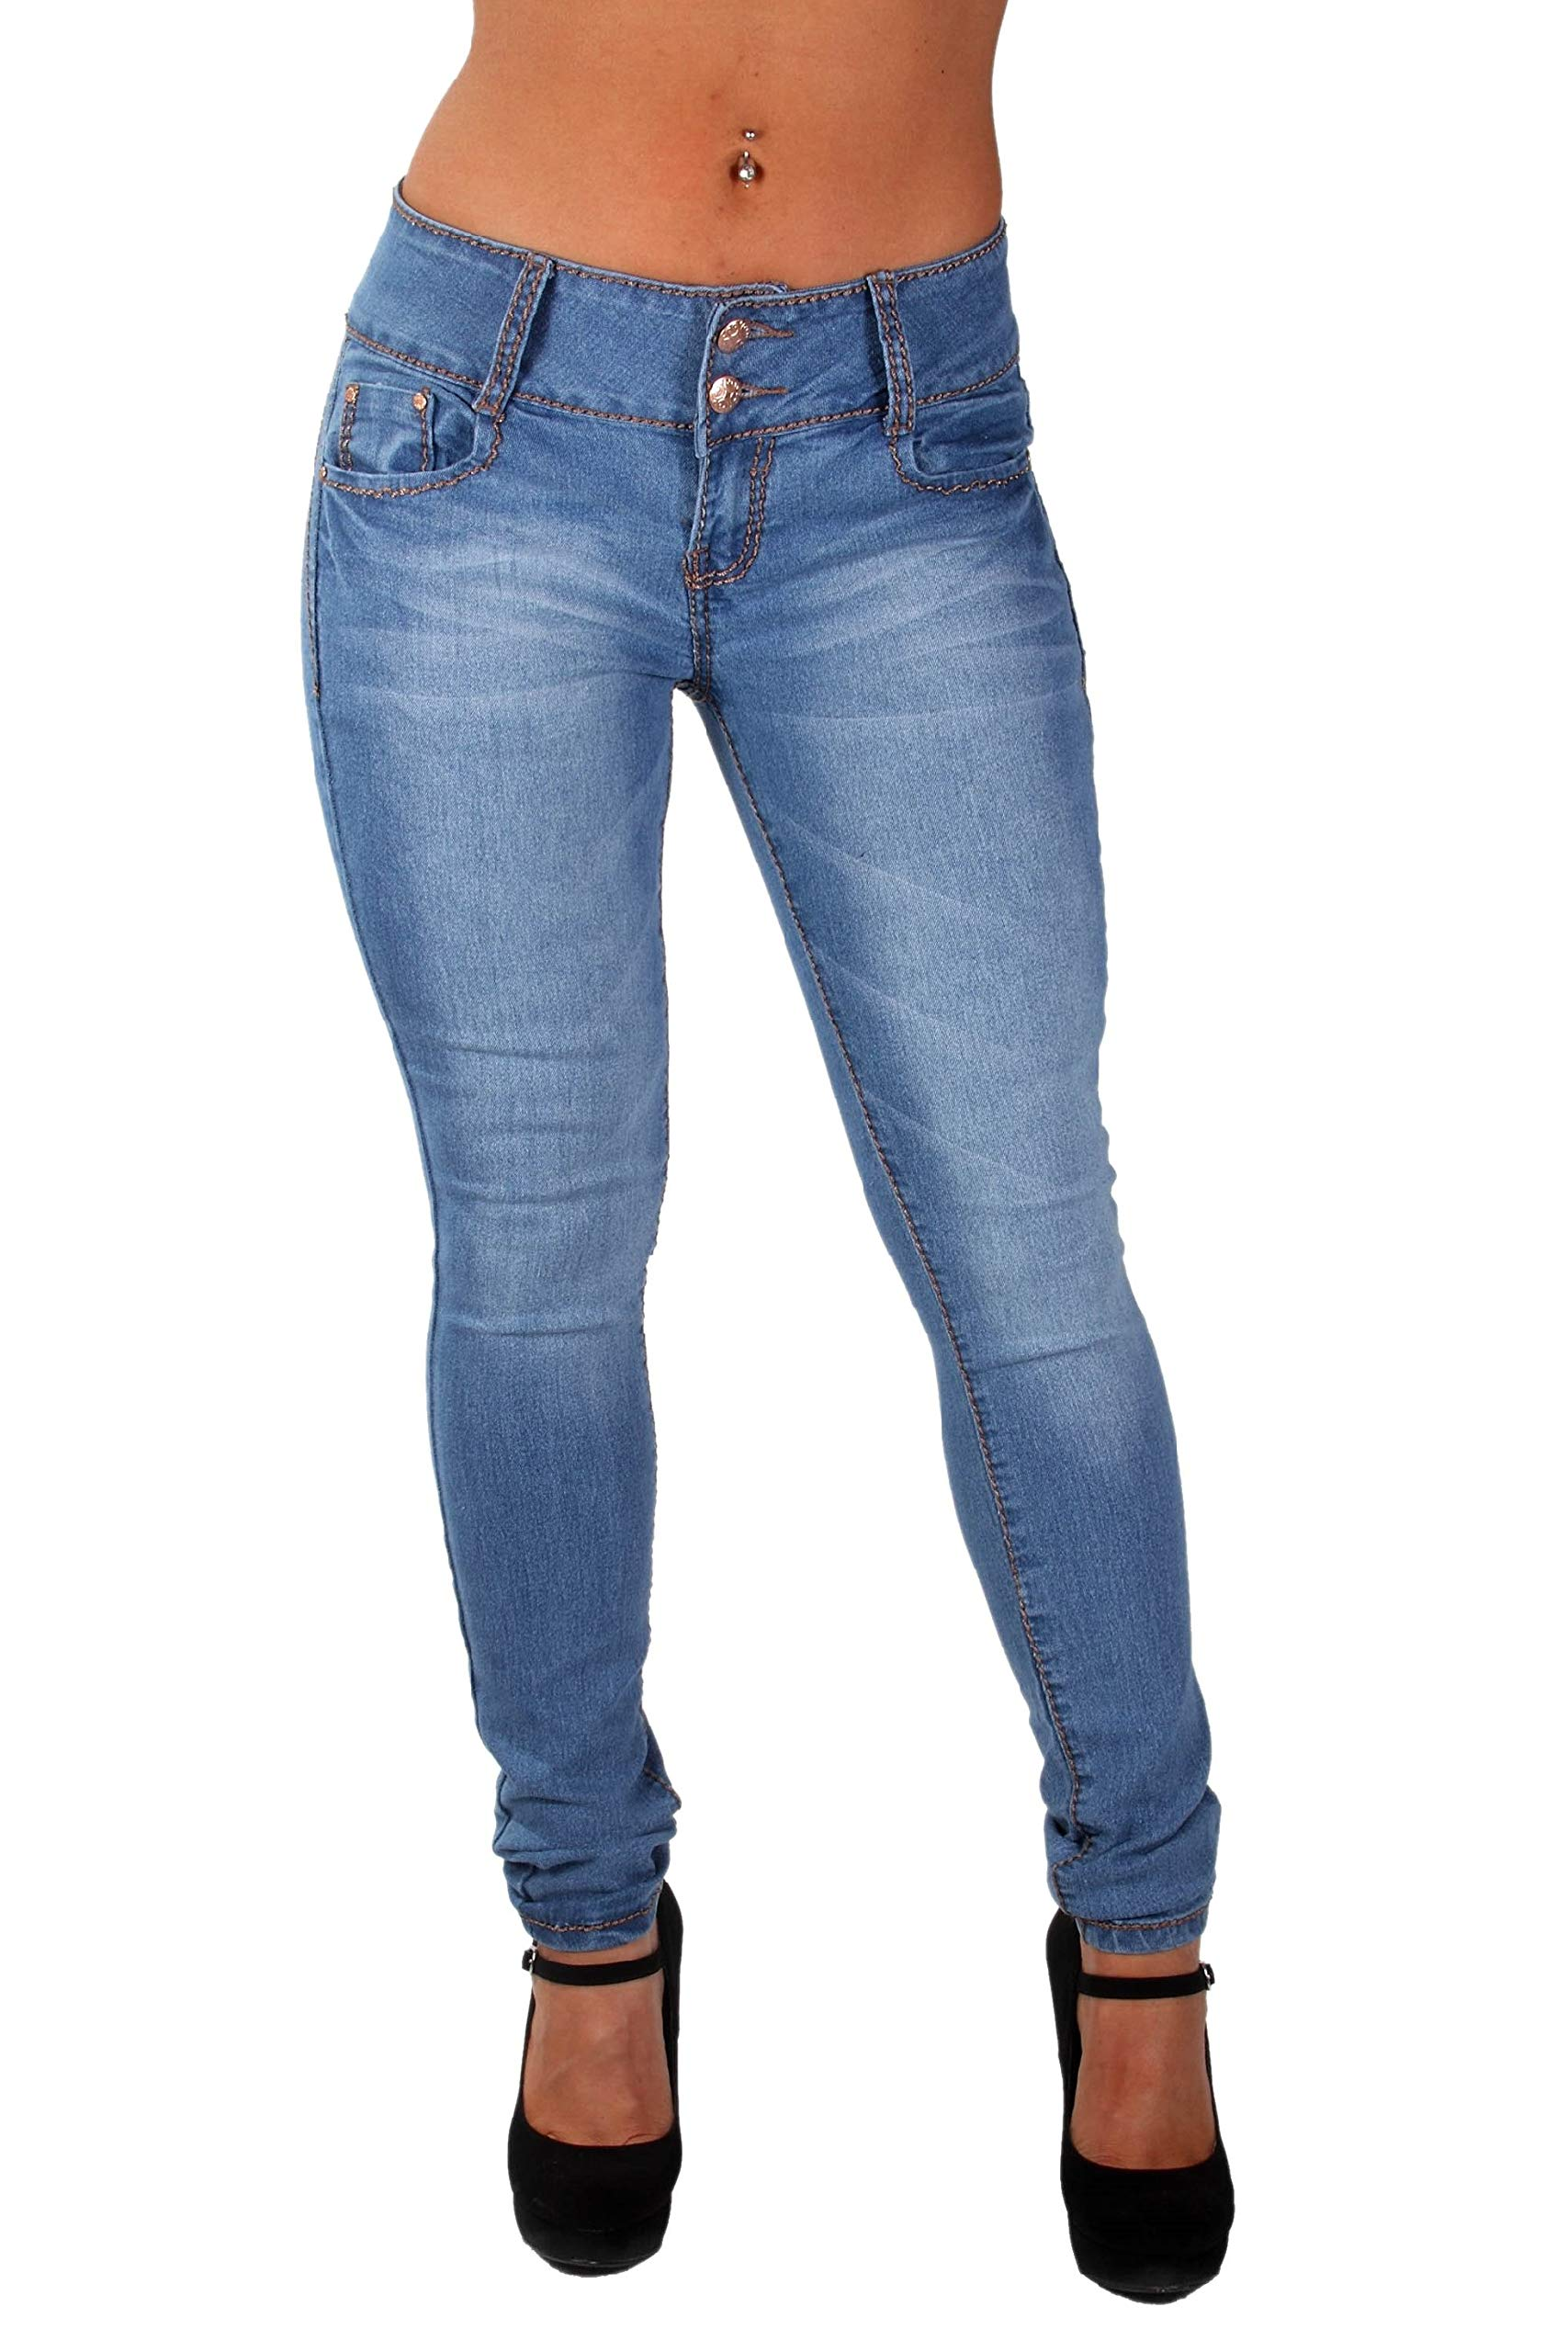 Style G154P– Plus Size, Colombian Design, Mid Waist, Butt Lift, Skinny Jeans in M. Blue Size 14